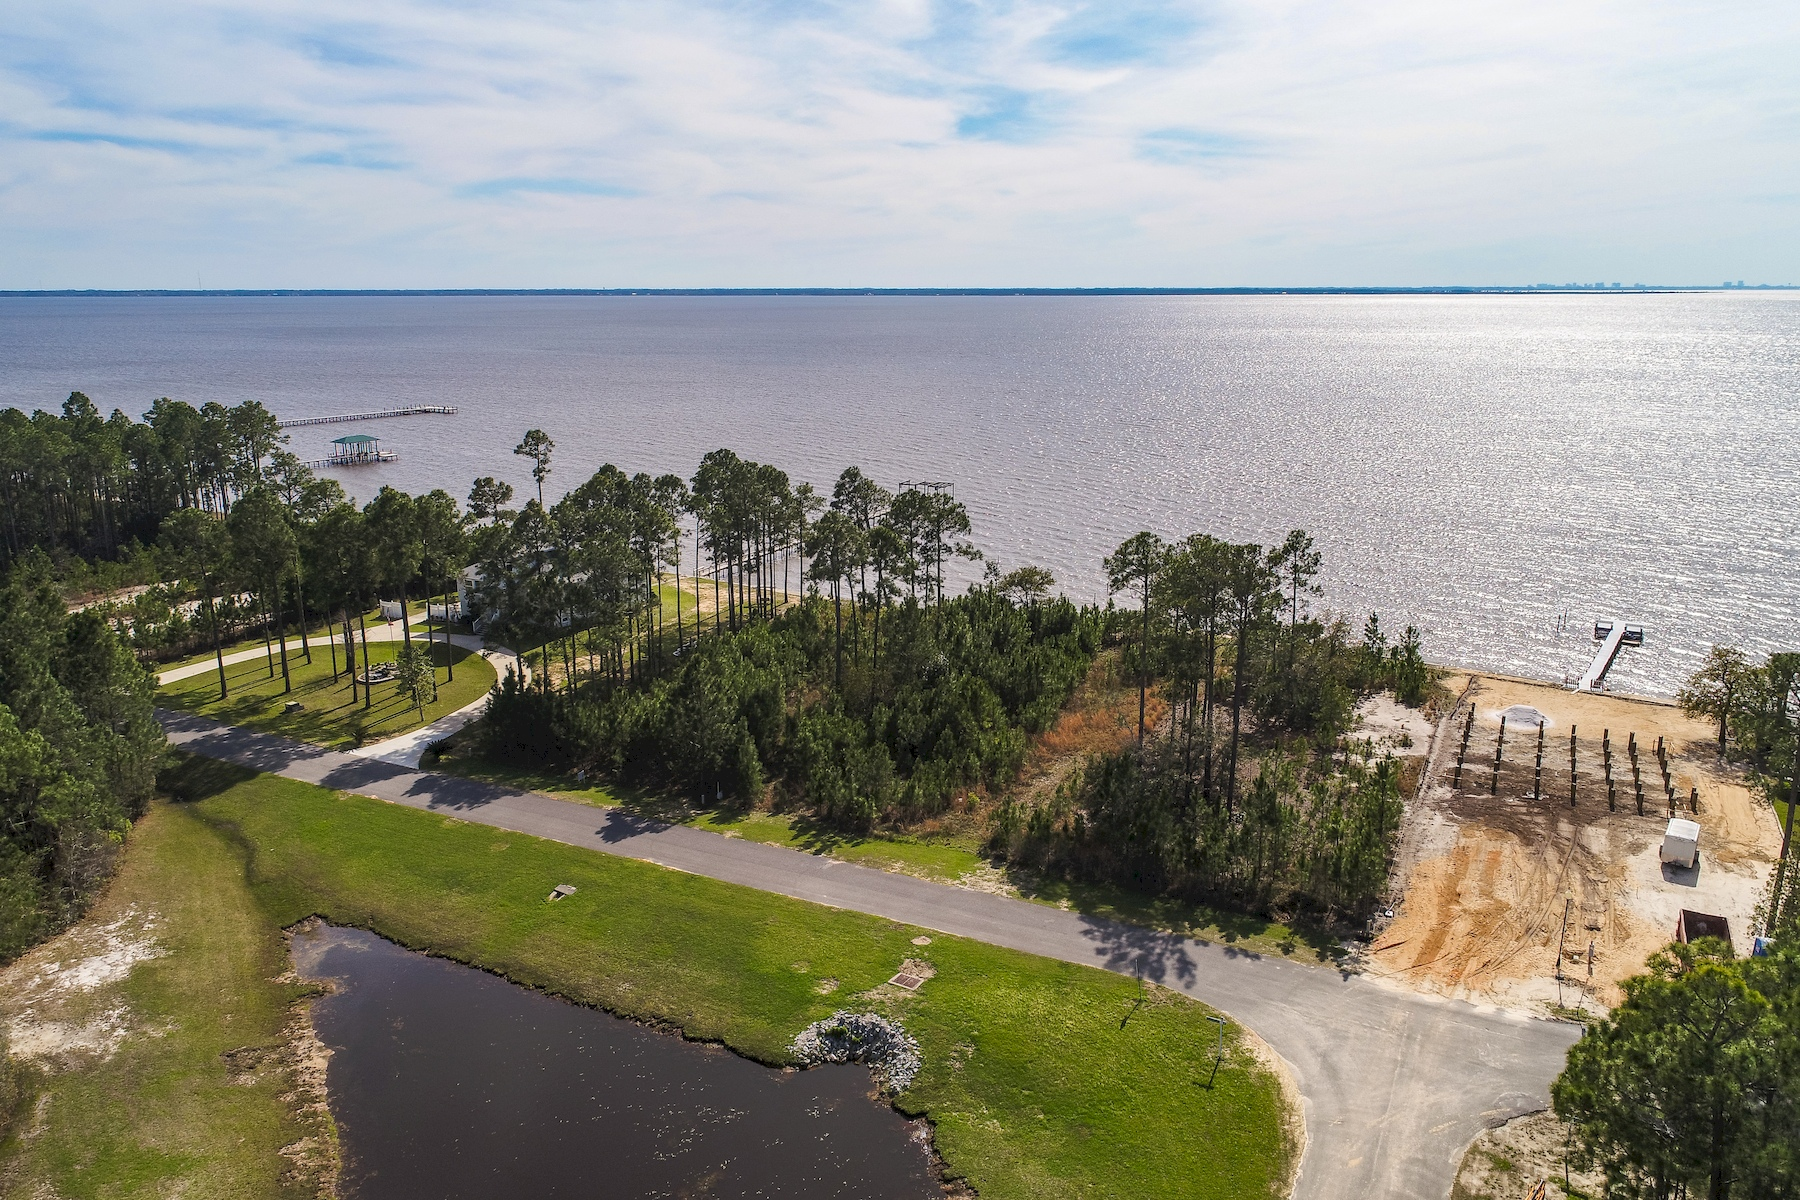 Land for Sale at 80 Feet of Bay Frontage in Quiet Neighborhood Lot 38 S Sunset Harbour, Freeport, Florida, 32439 United States